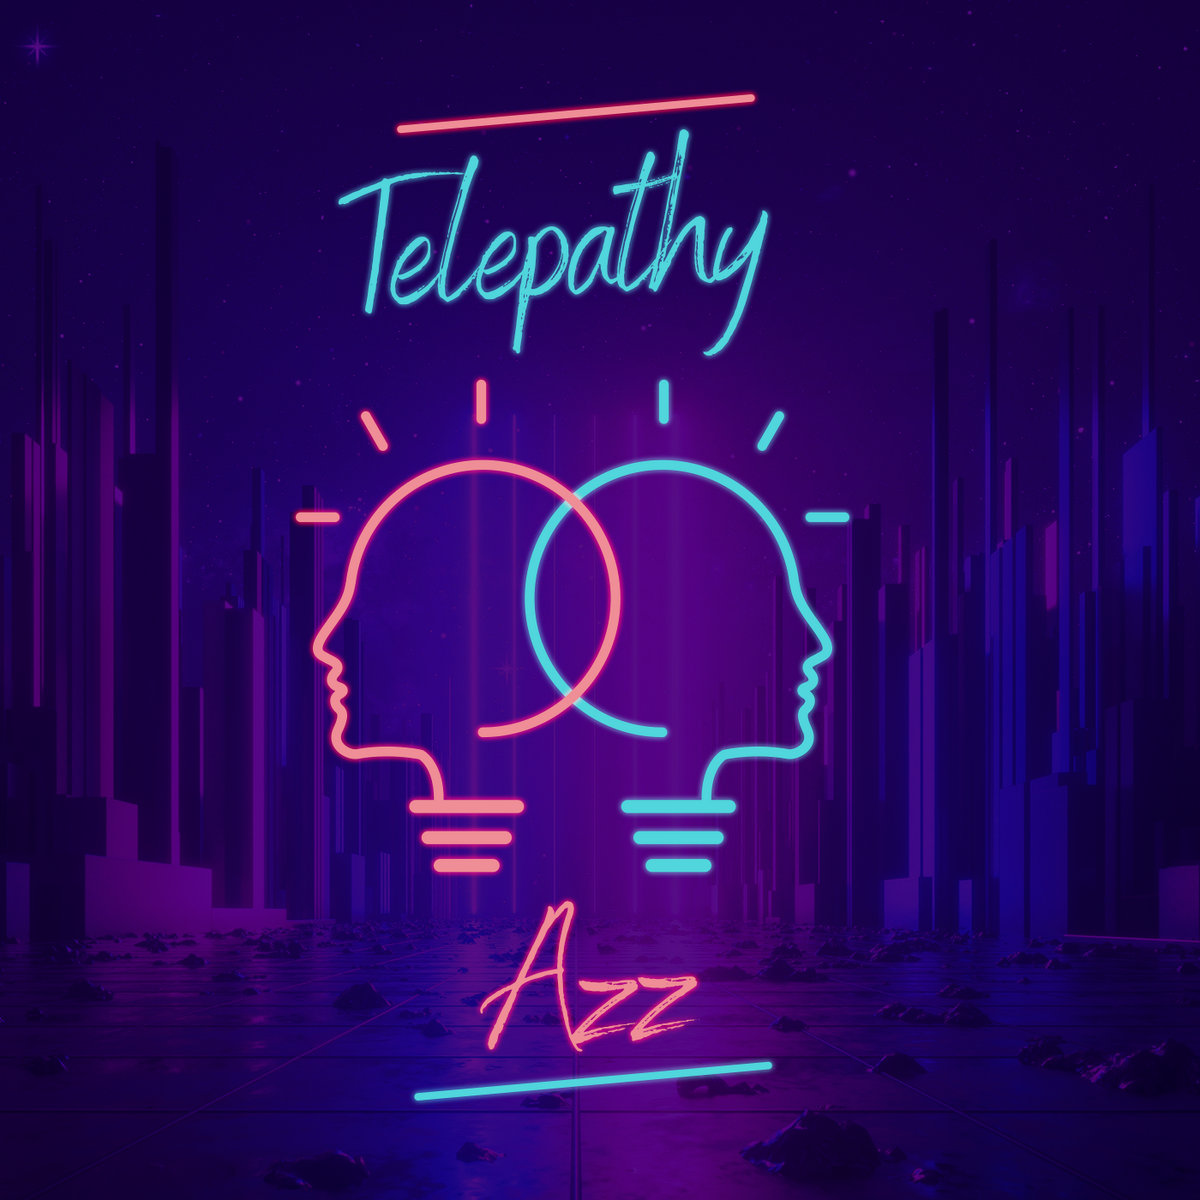 Telepathy by Azz